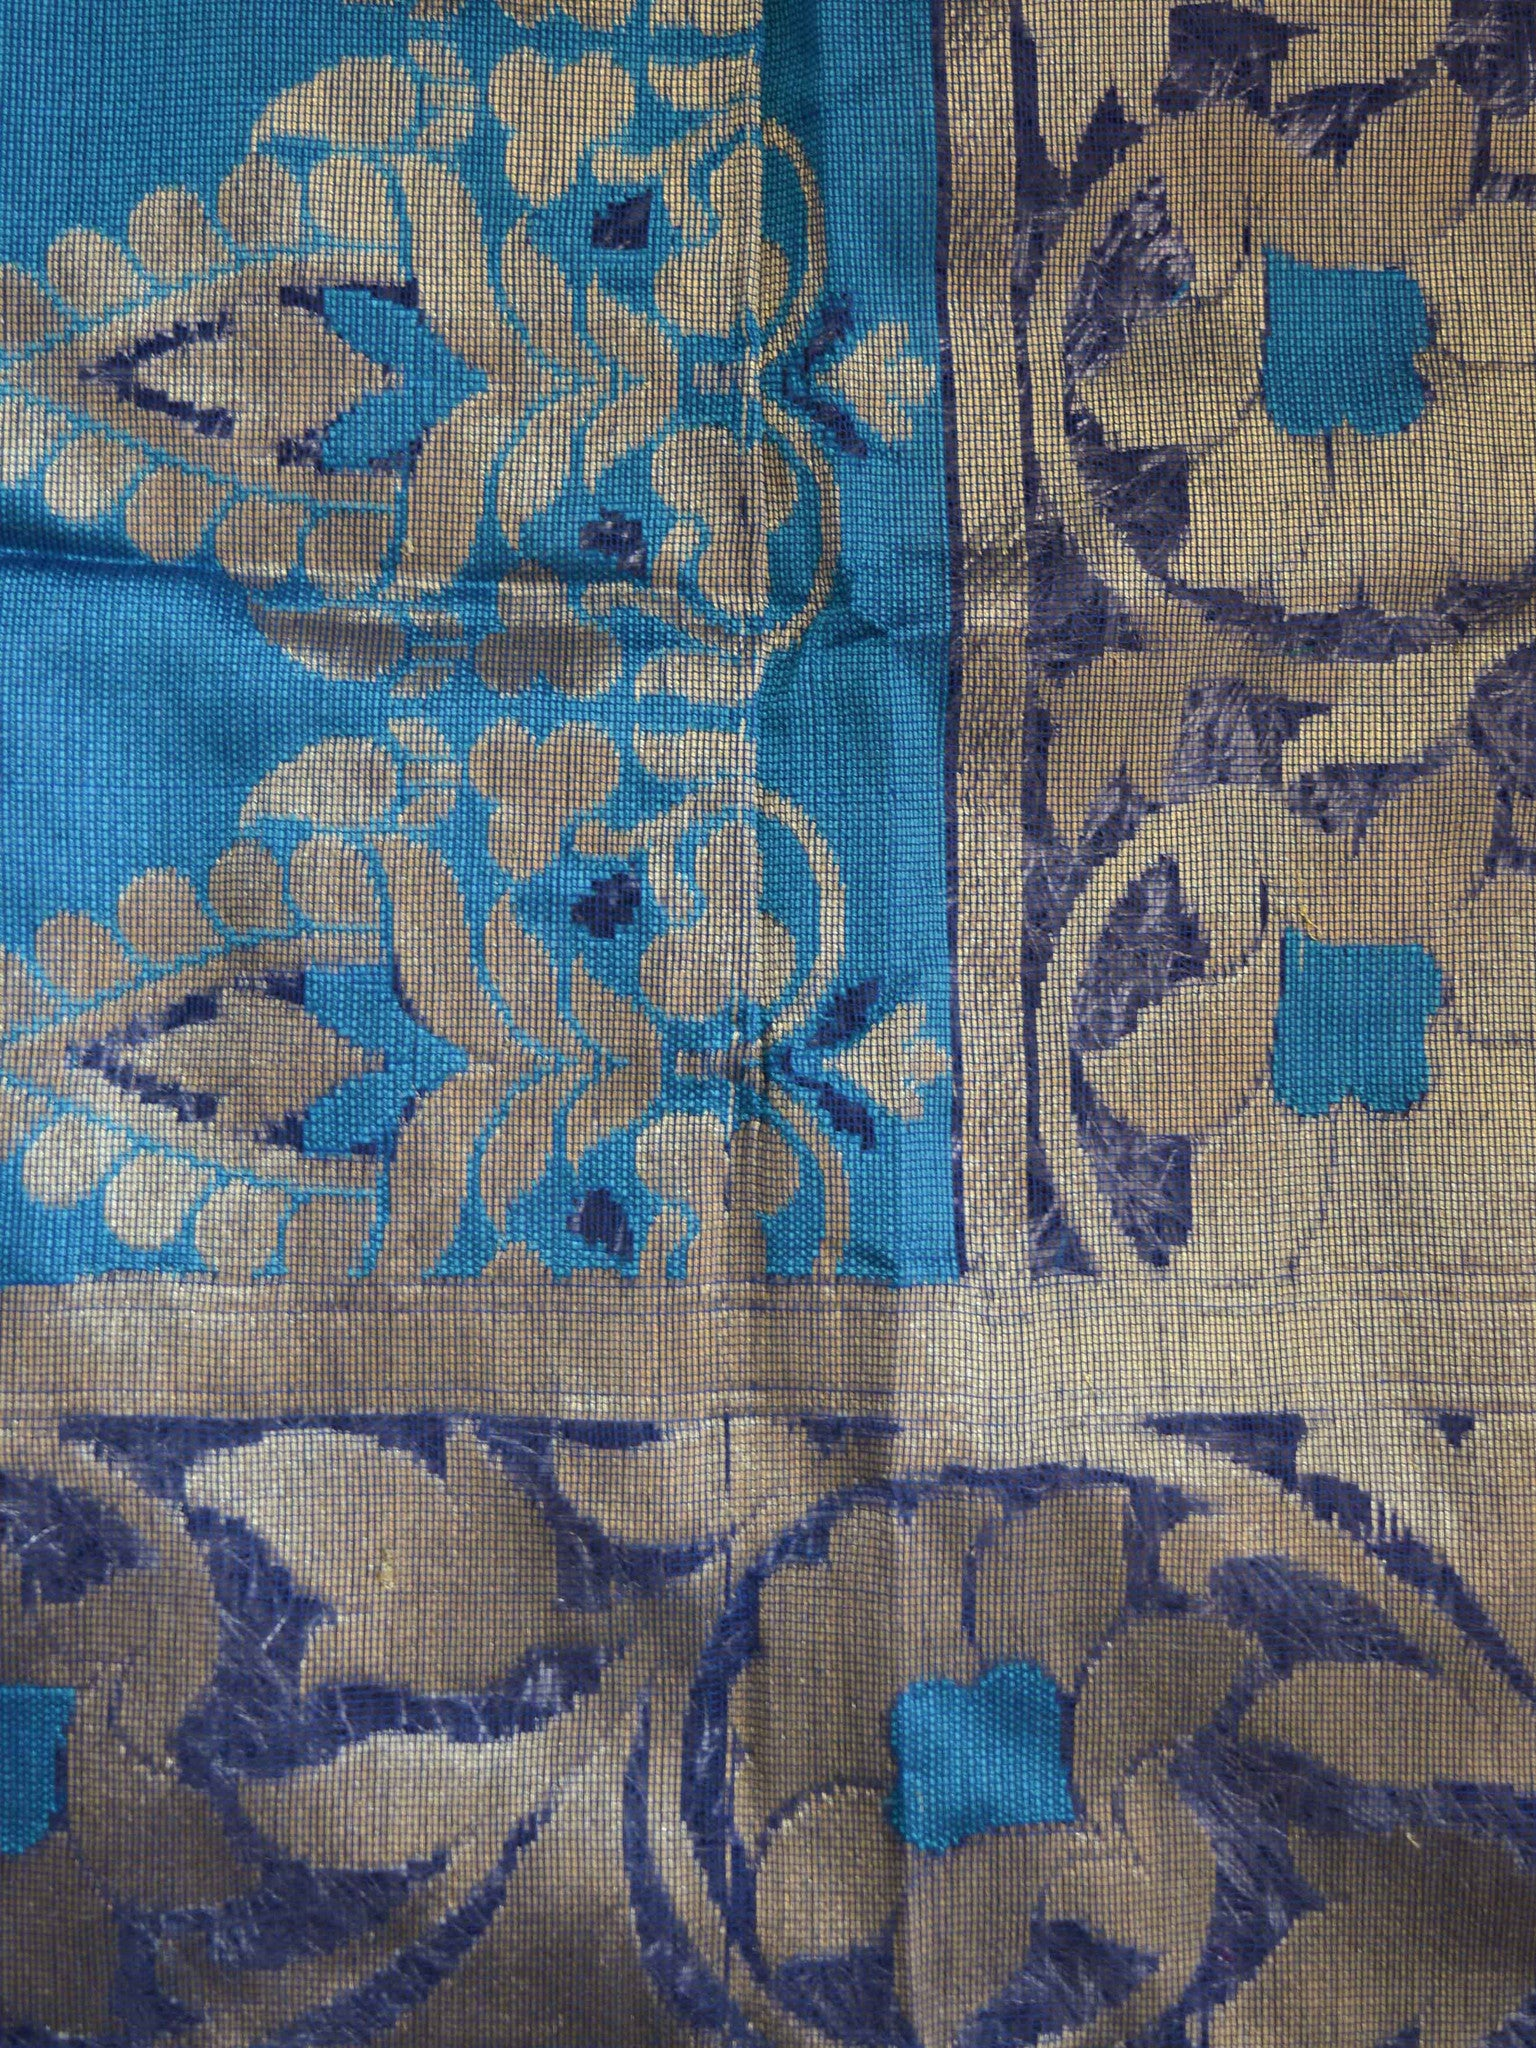 Banarasee/Banarasee Pure Net Handloom Saree in Floral Jaal Design-Blue